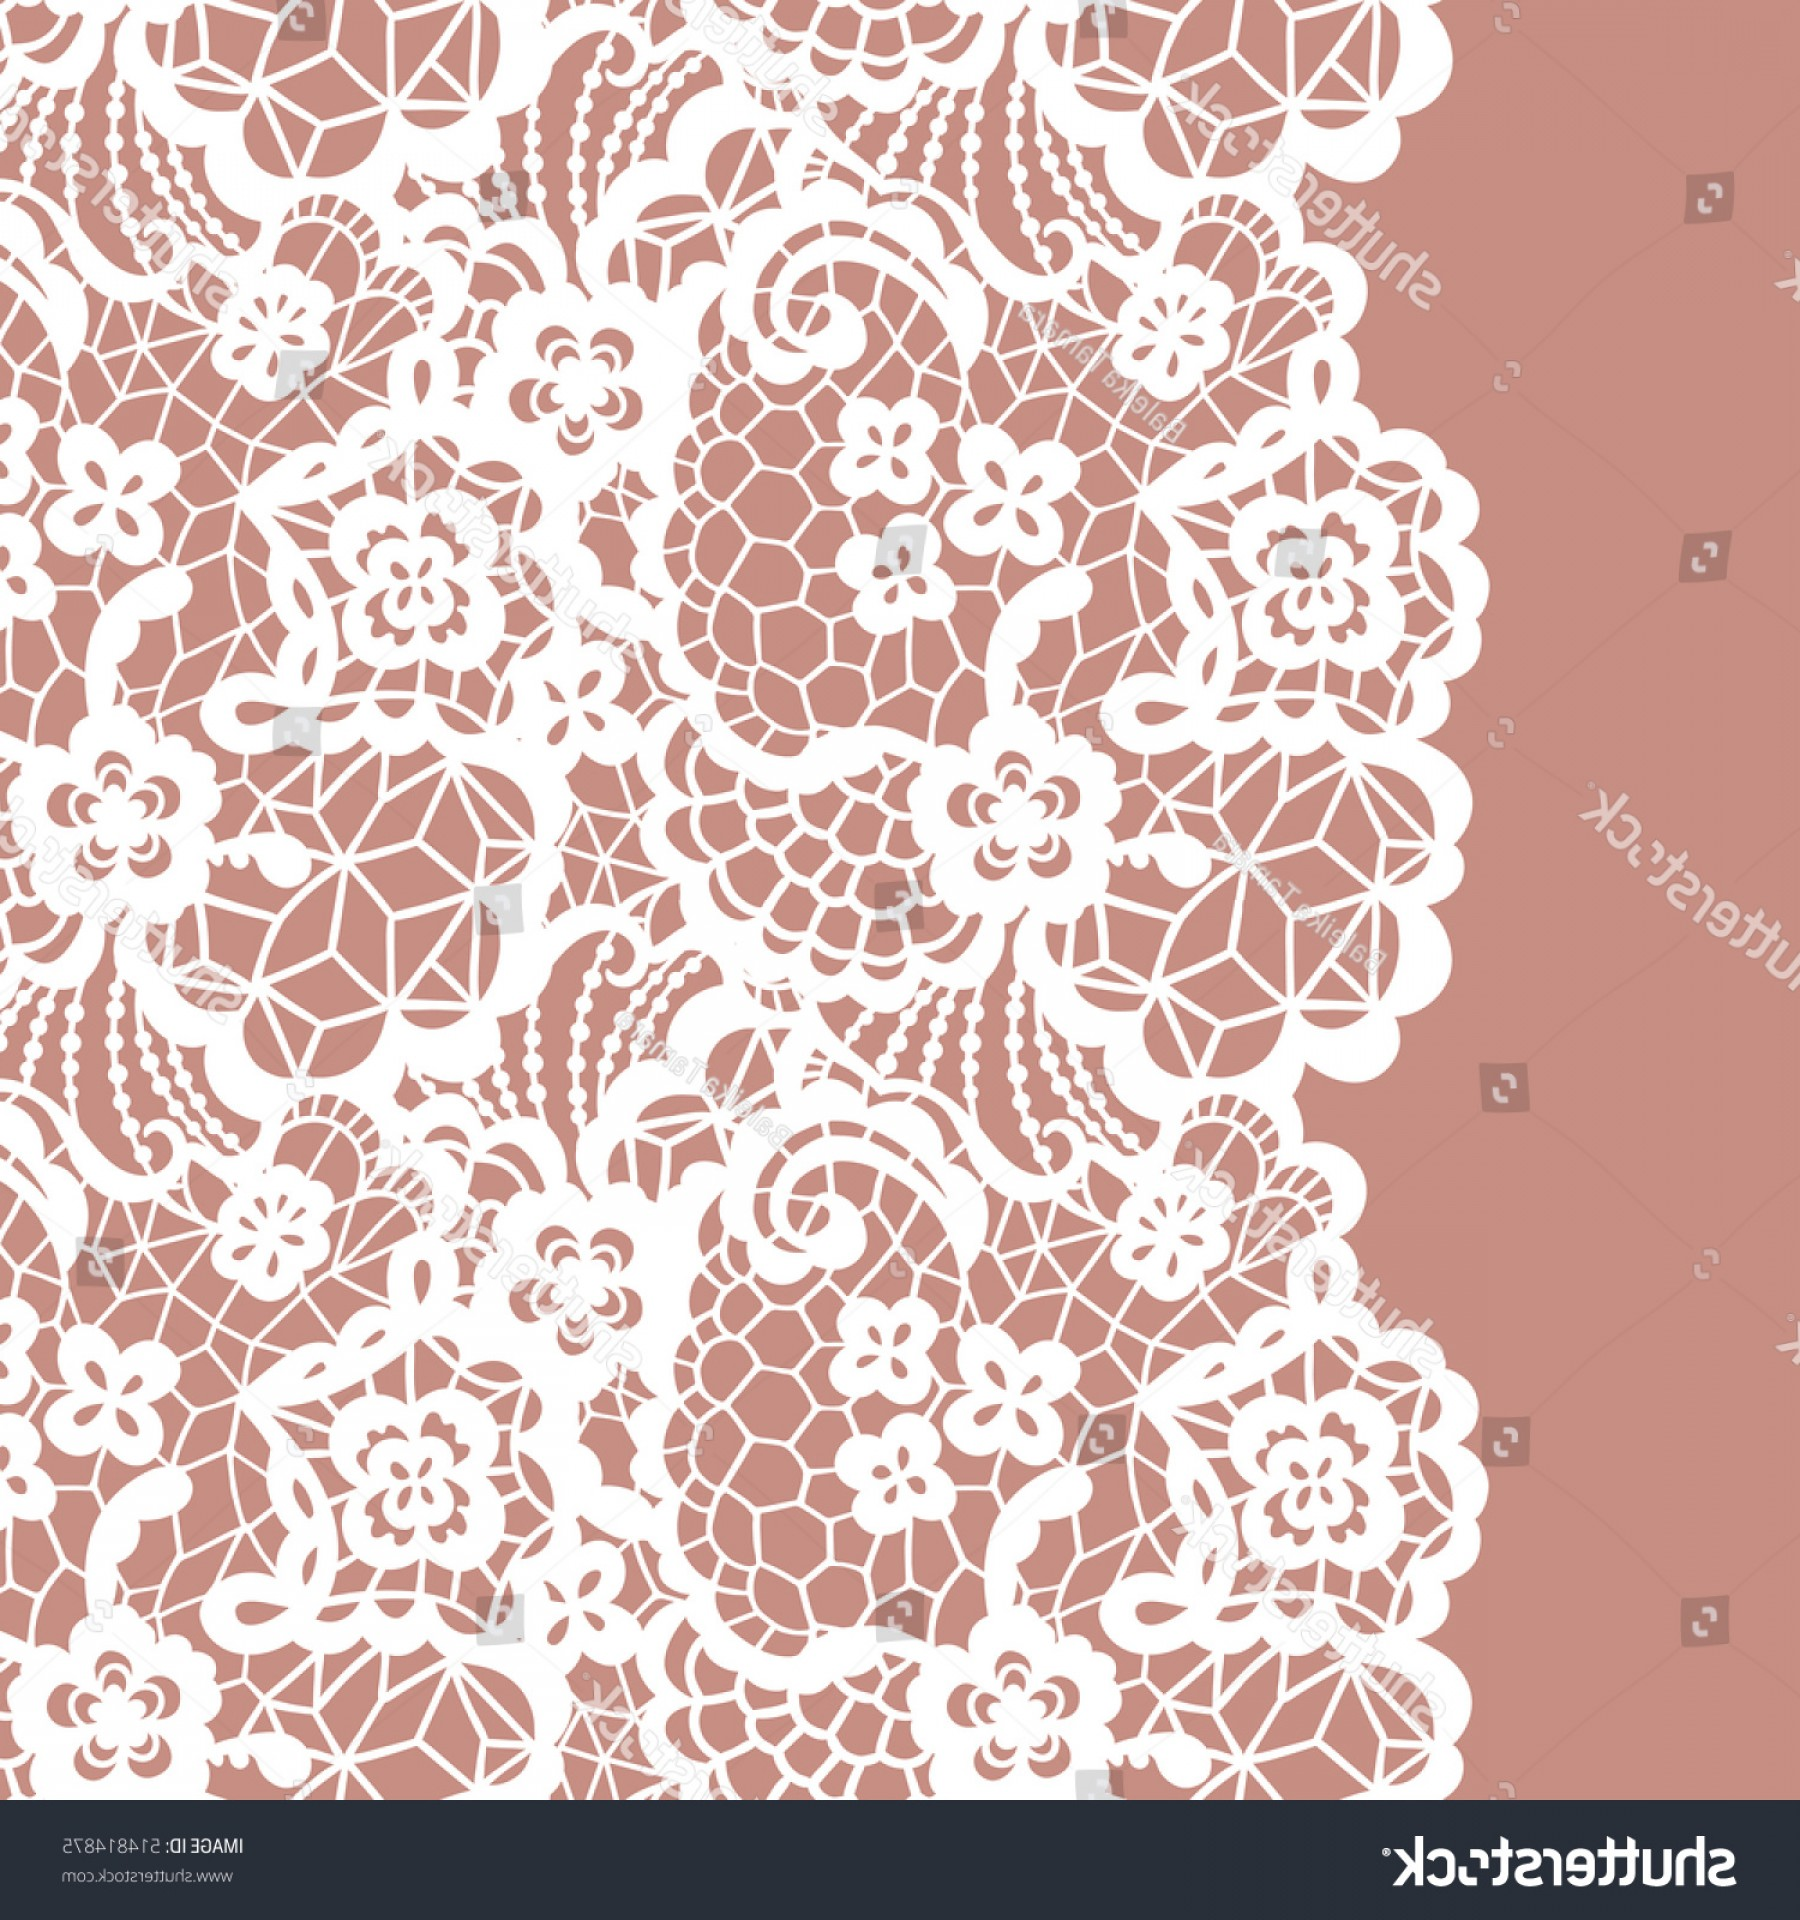 Floral Lace Trim Vector: Seamless Lace Border Vector Illustration White